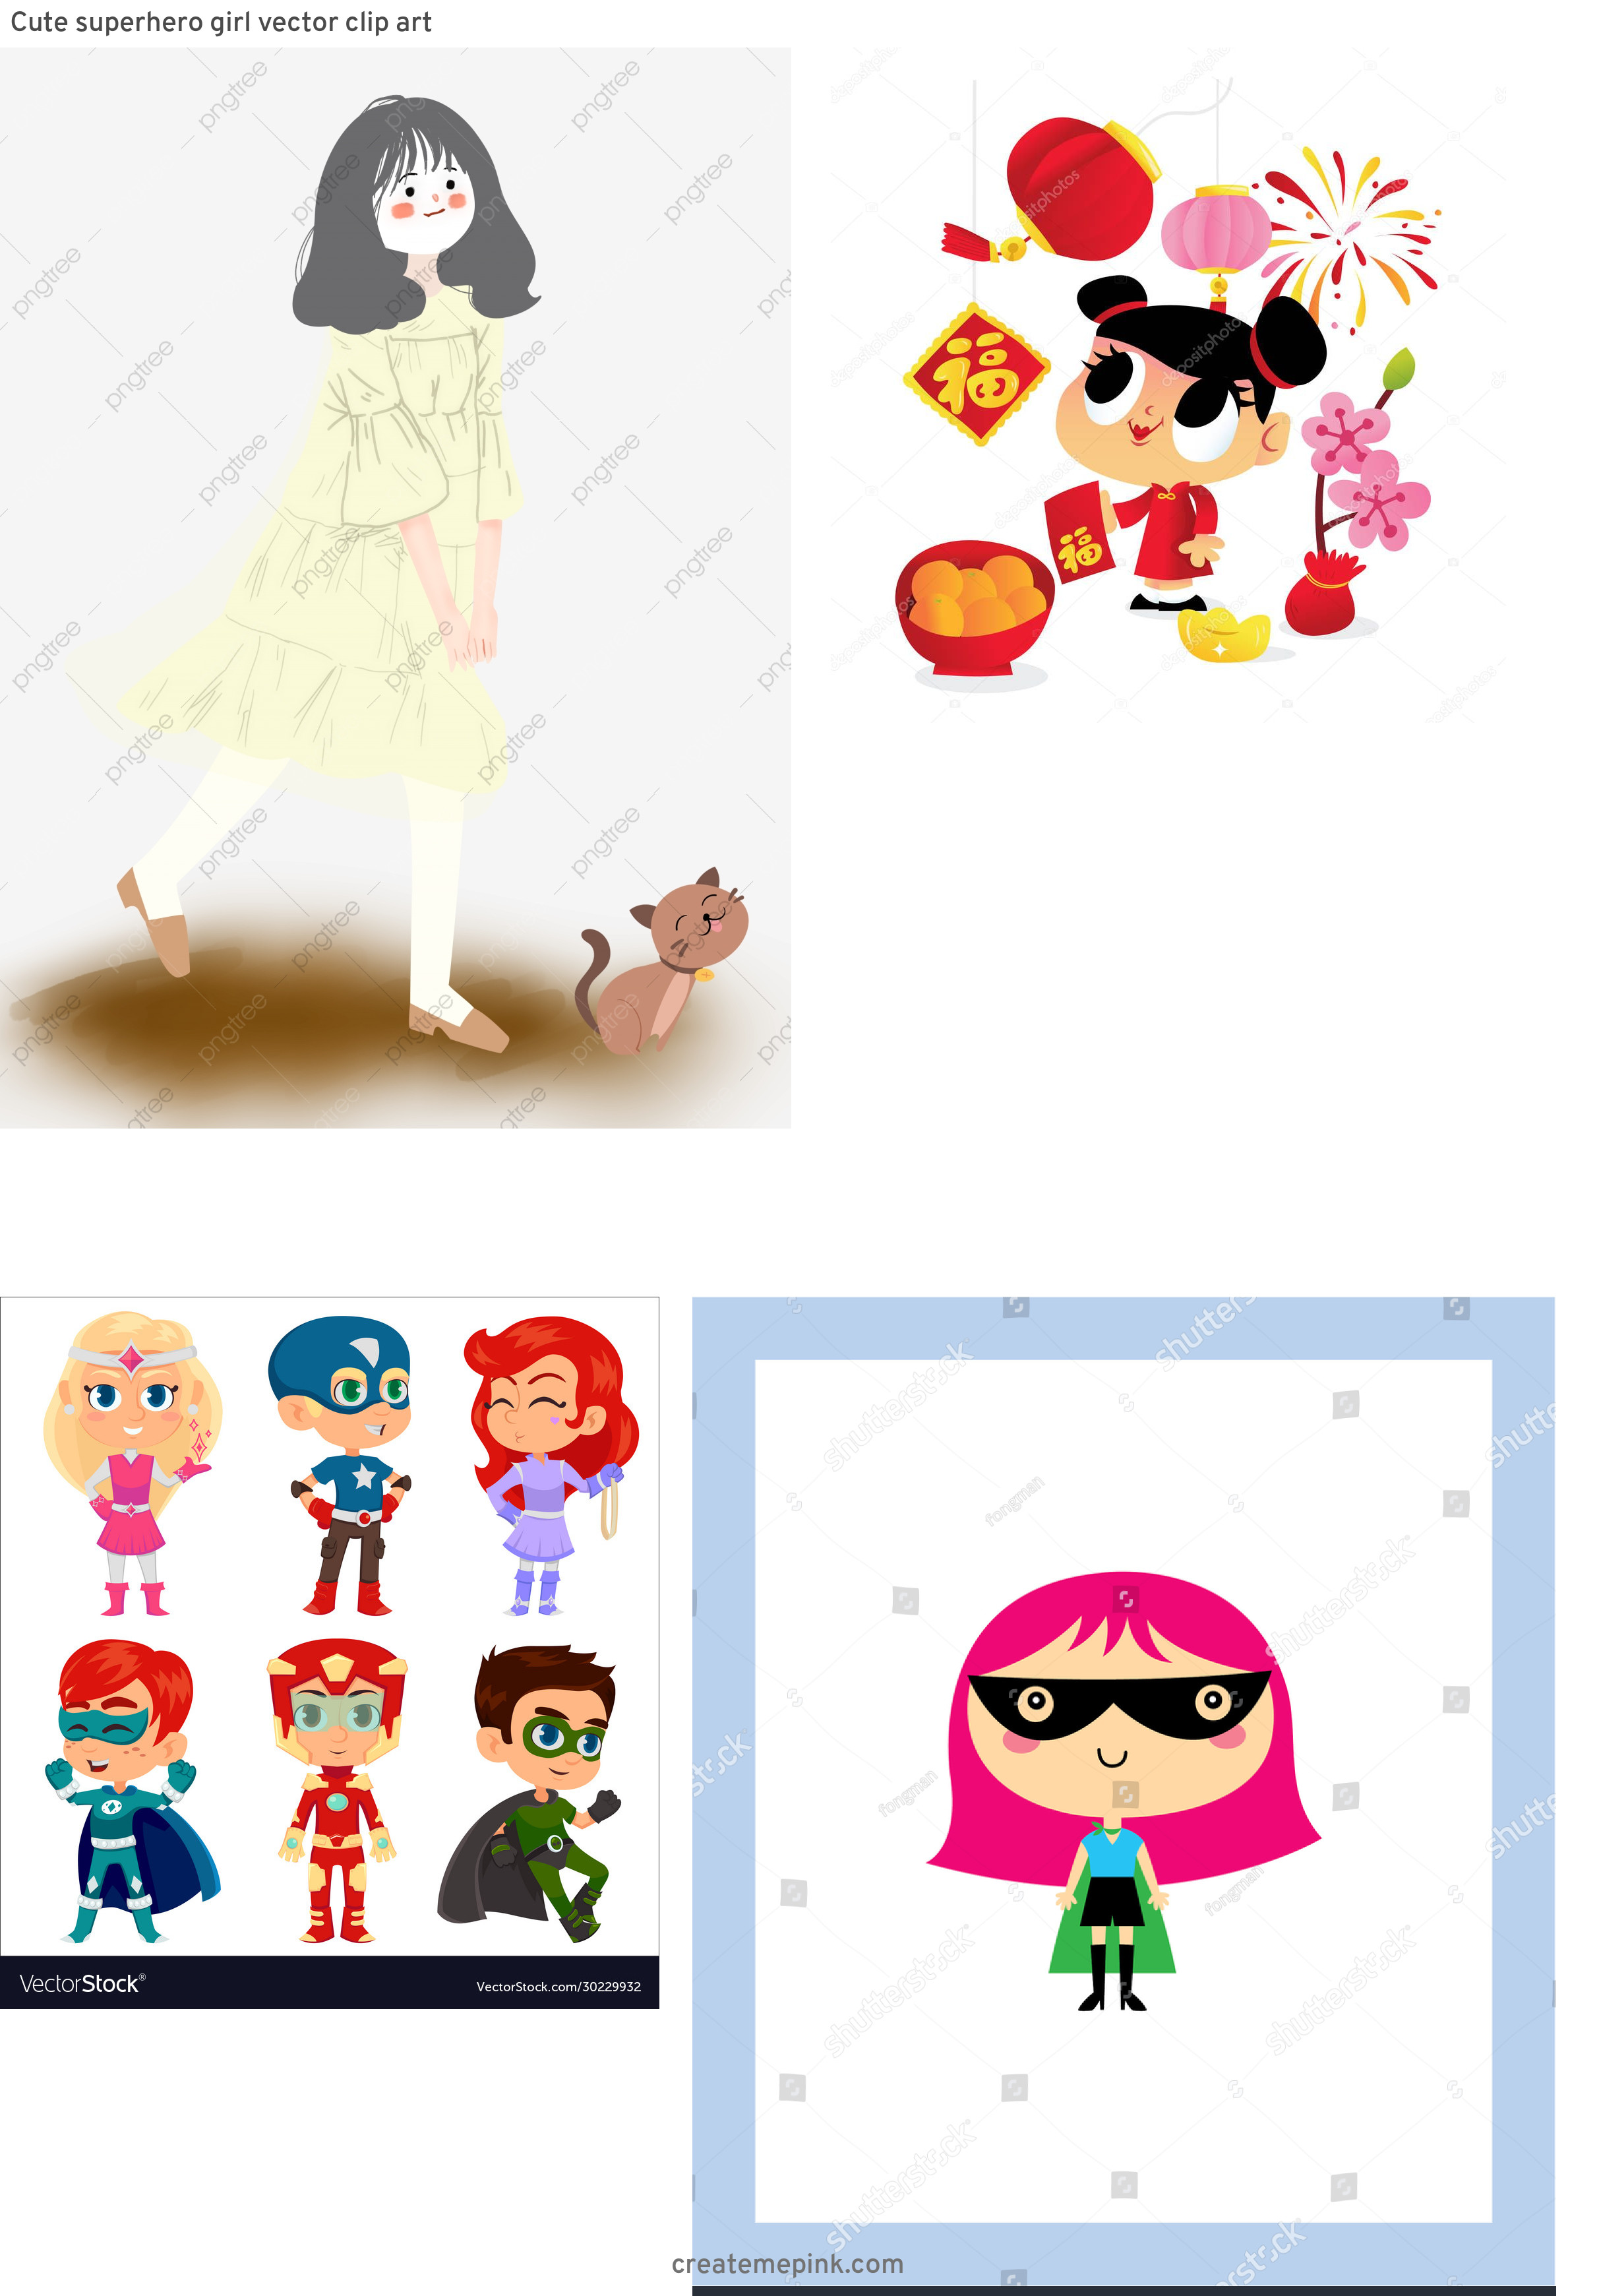 Super Cute Cartoon Girl Vector: Cute Superhero Girl Vector Clip Art